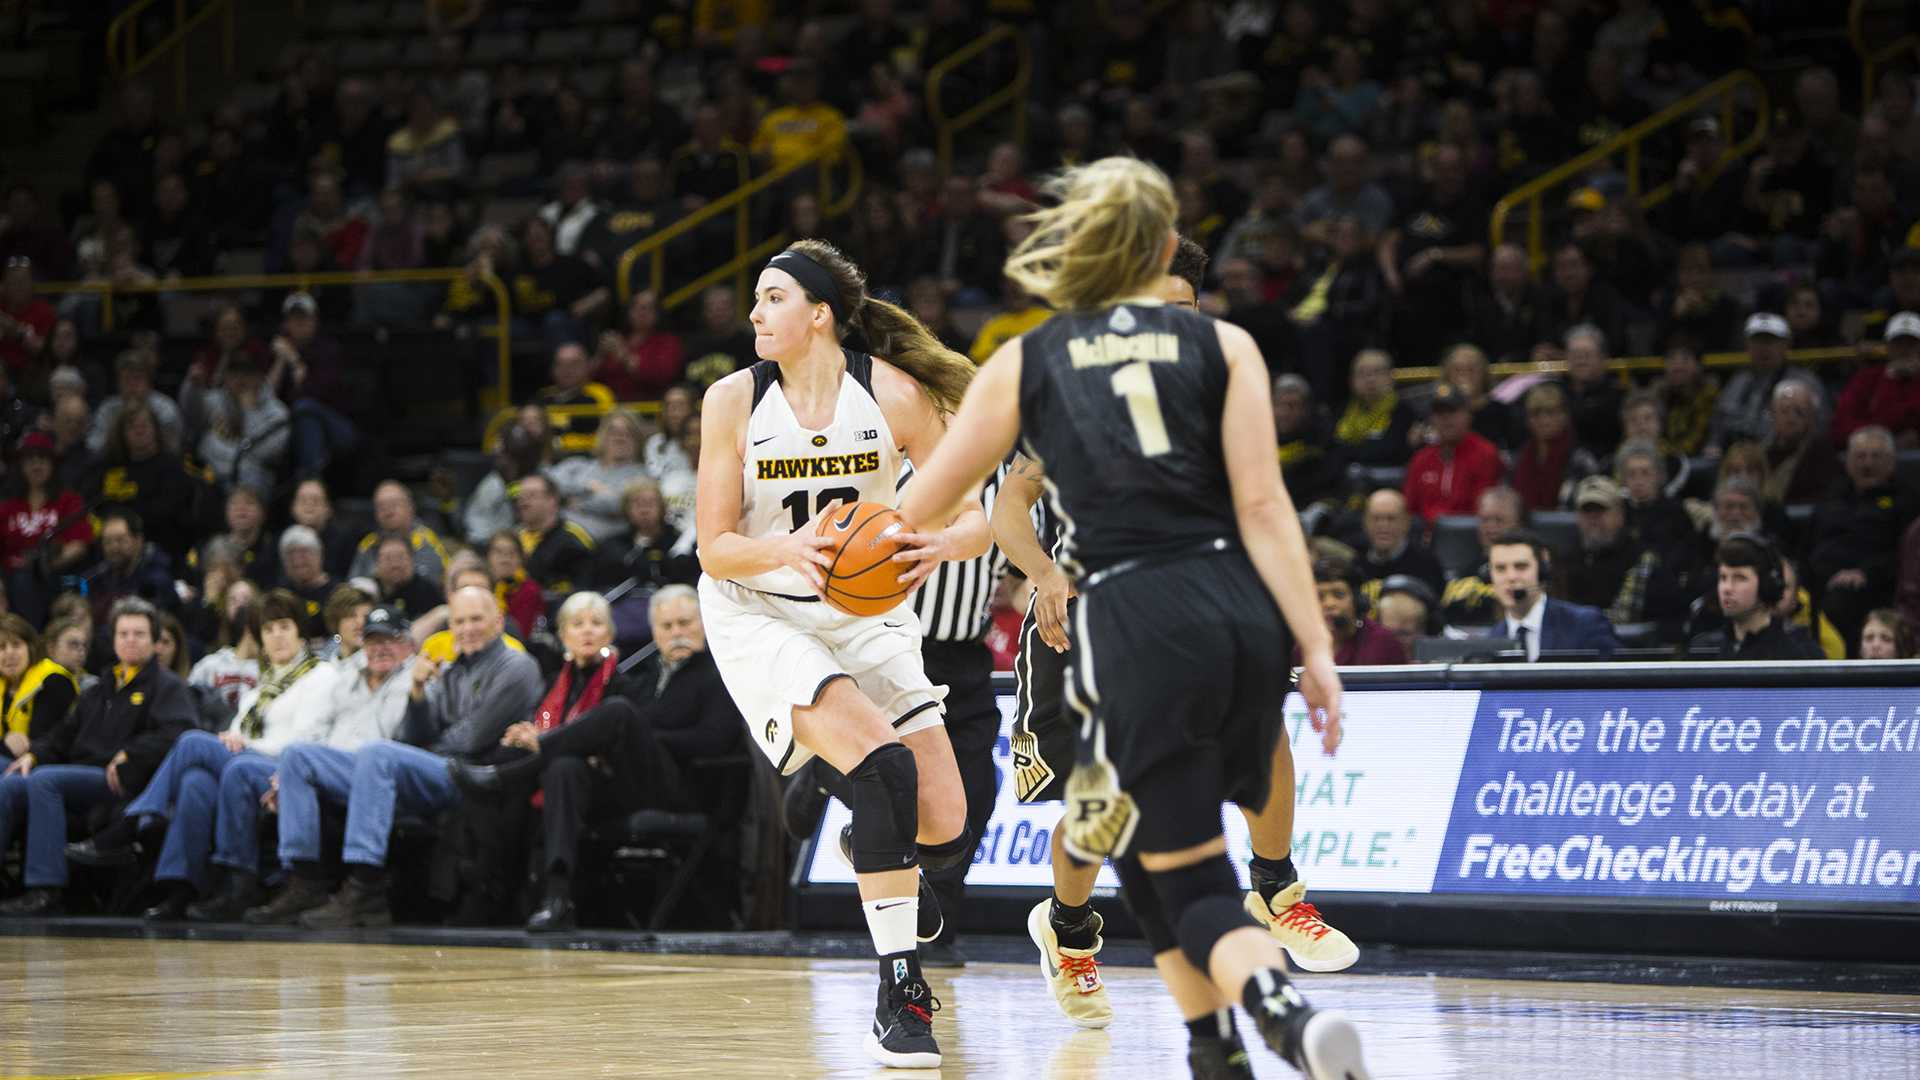 Iowa center Megan Gustafson looks to pass during an Iowa/Purdue women's basketball game in Carver-Hawkeye Arena on Saturday, Jan. 13, 2018. The Boilermakers defeated the Hawkeyes, 76-70. (Joseph Cress/The Daily Iowan)